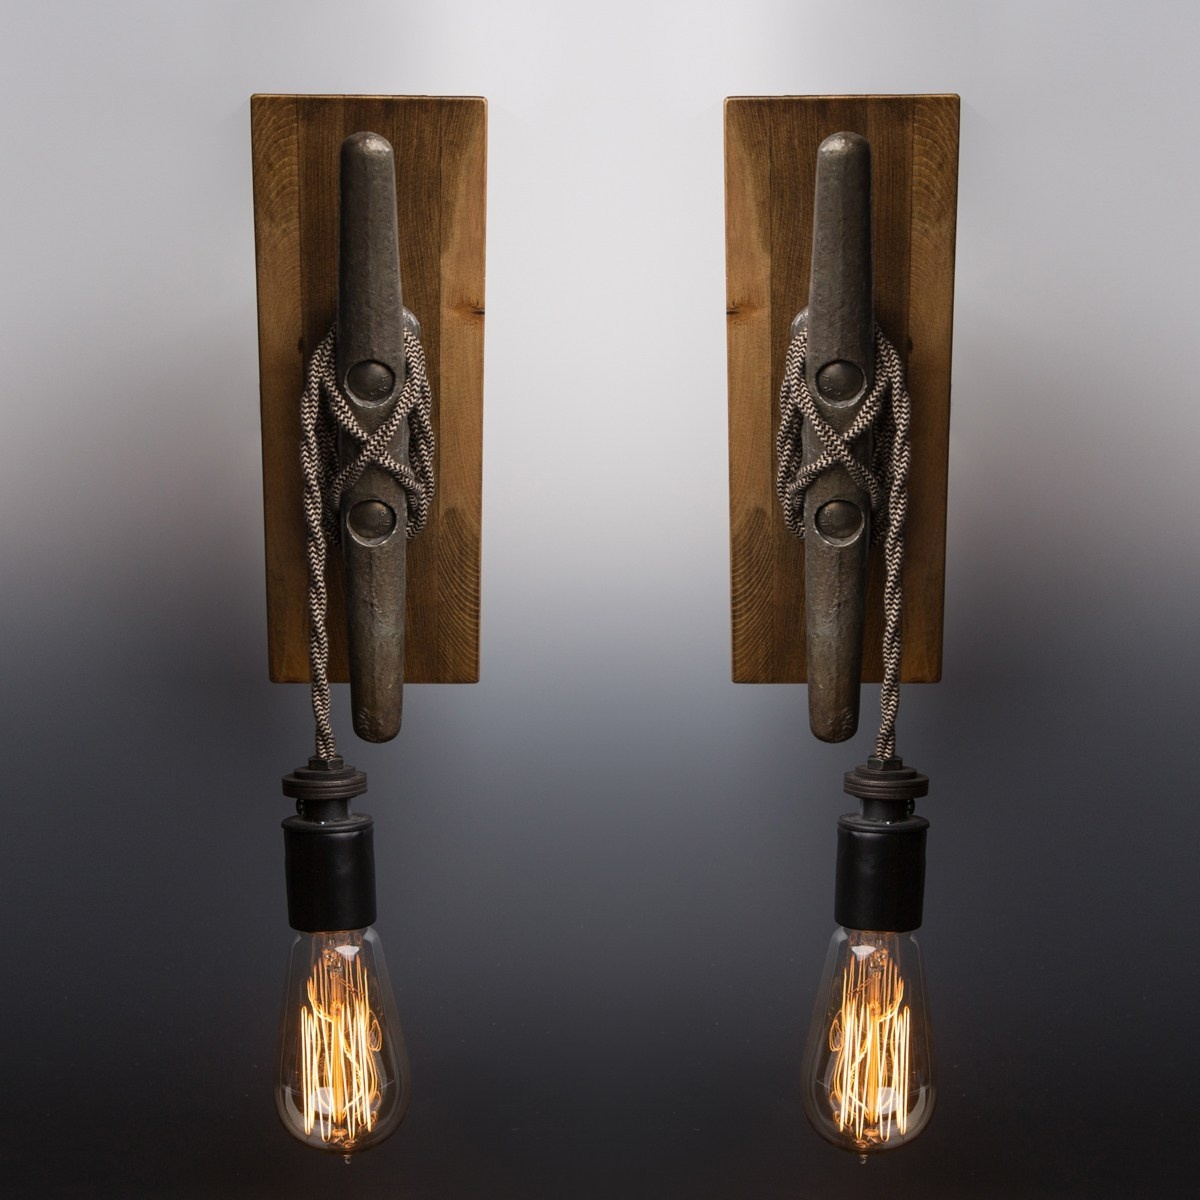 Luke Hobbs Wall Sconces: set of 2